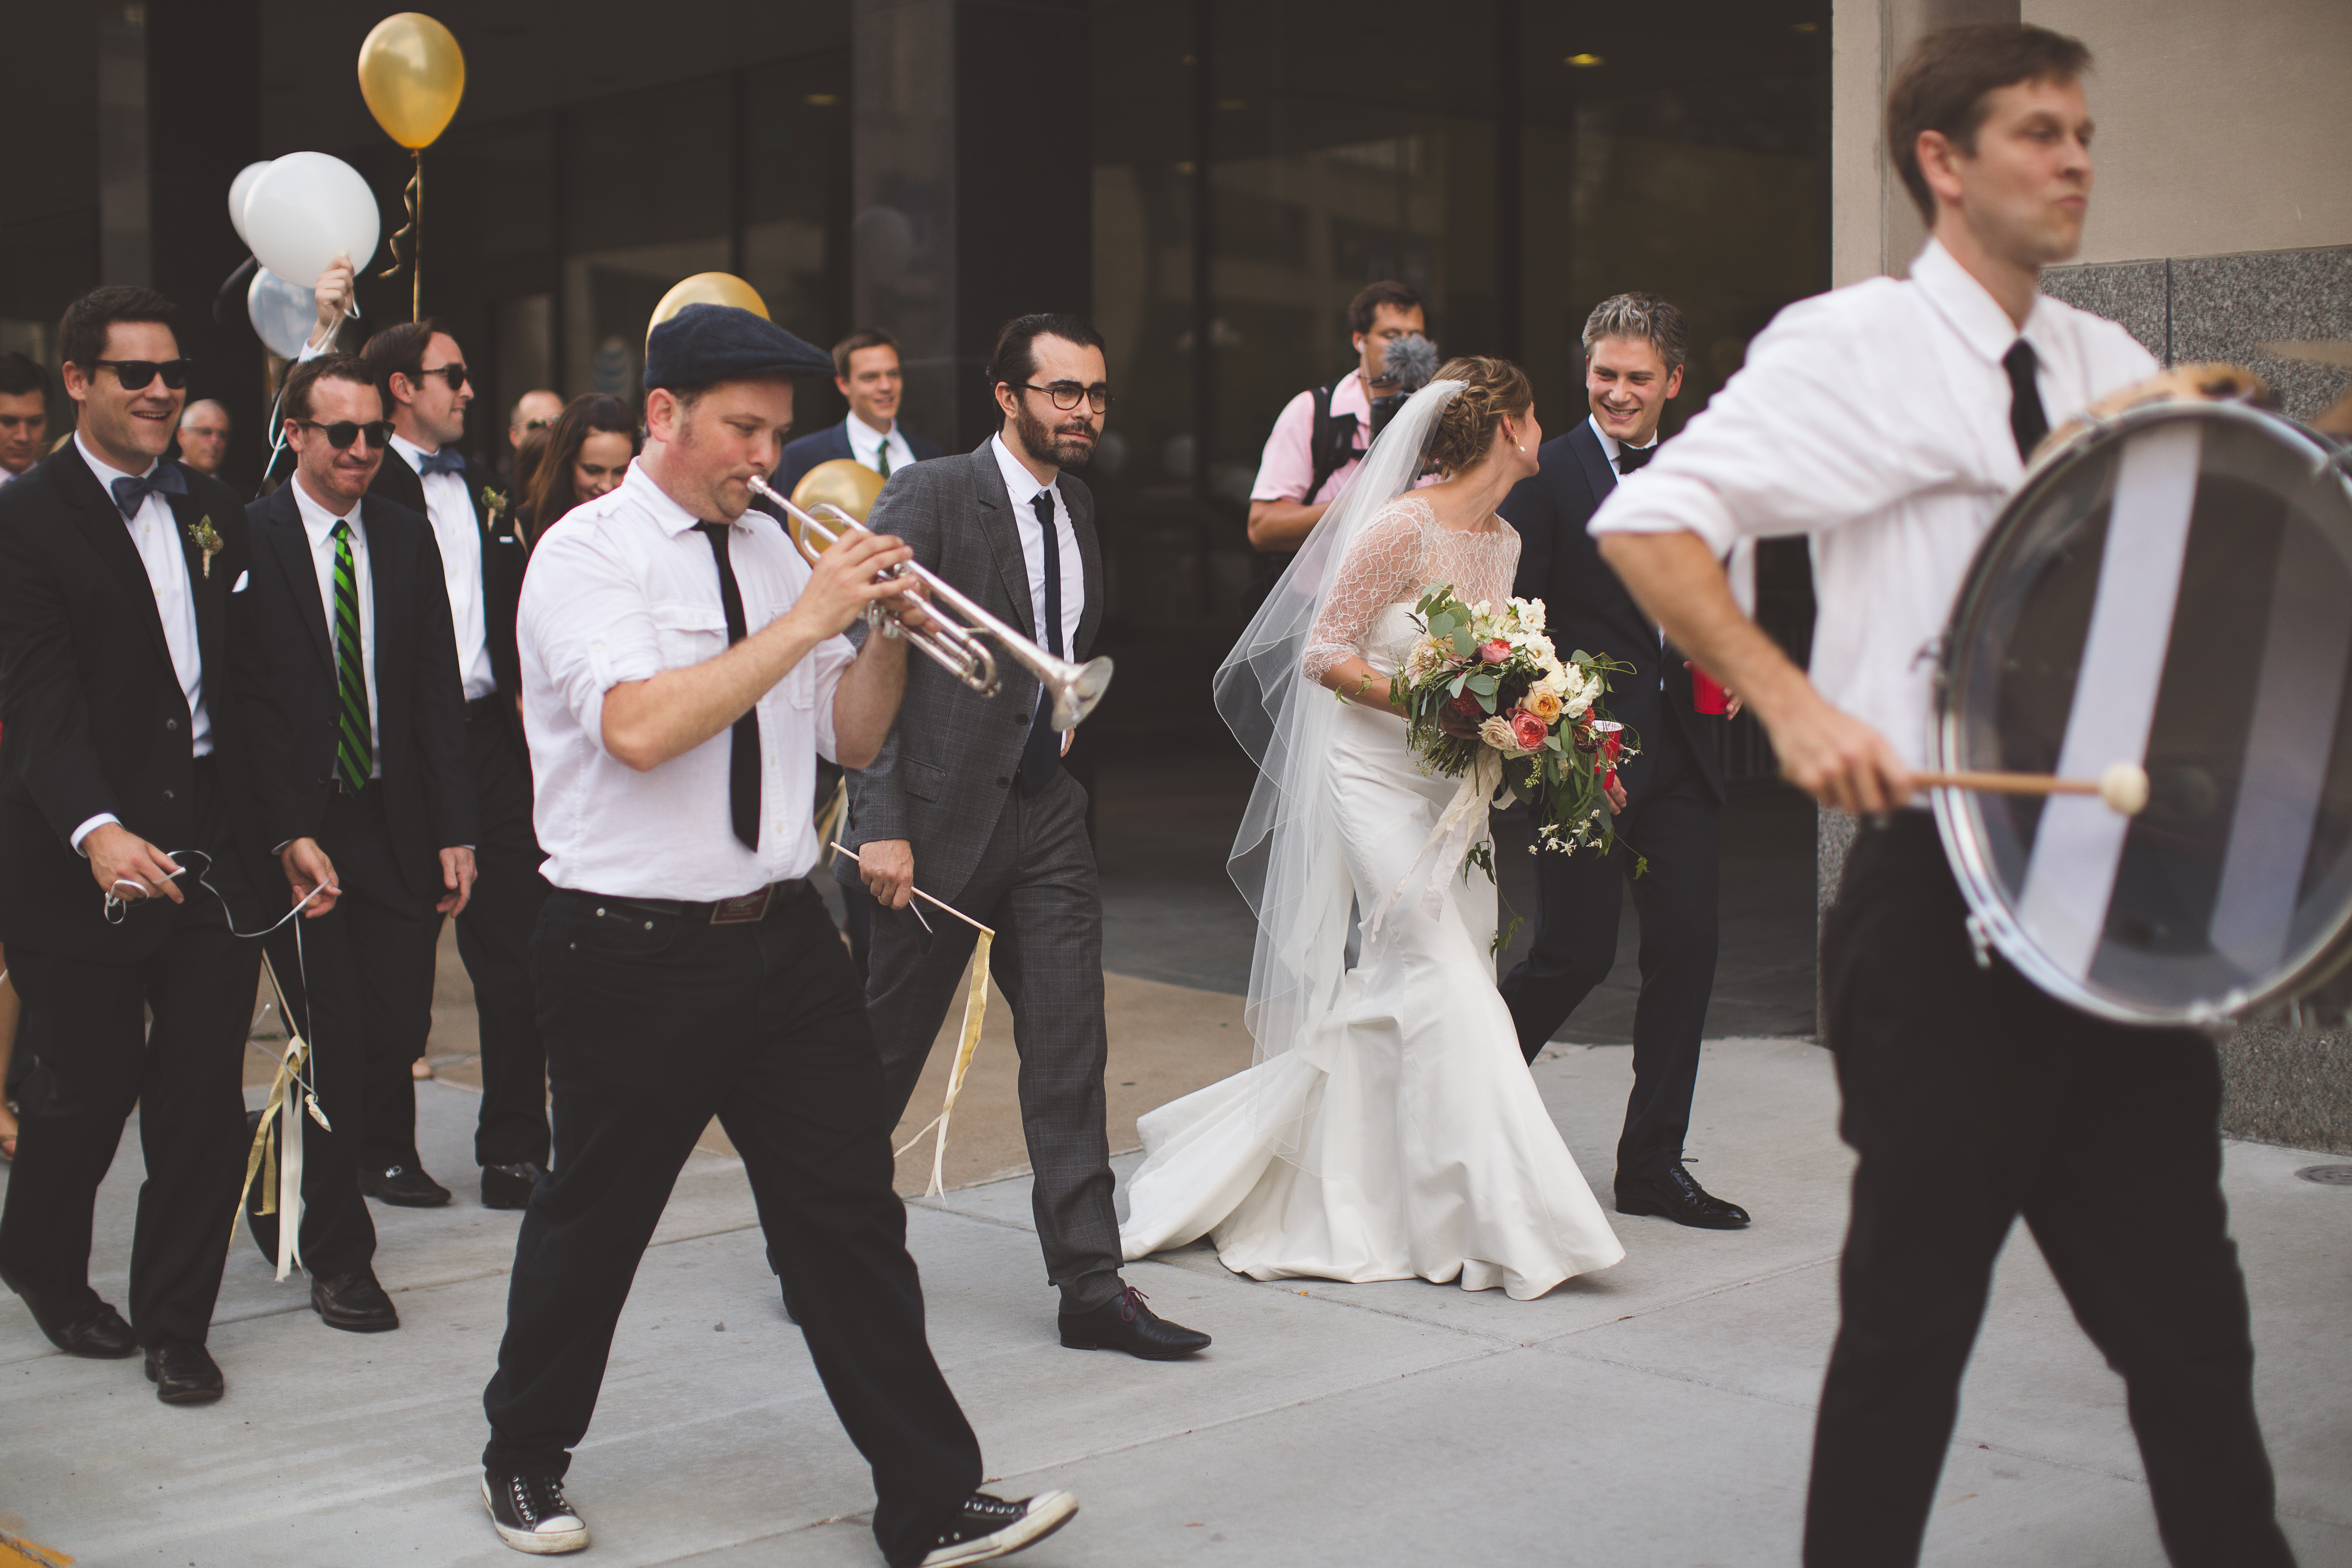 Looking to do a formal exit from your ceremony or reception? We're sharing 12 fun sendoff ideas for exiting your wedding in style over on the Jessica Dum Wedding Coordination blog today! | New Orleans style wedding parade complete with a brass band, balloons and ribbon wands!